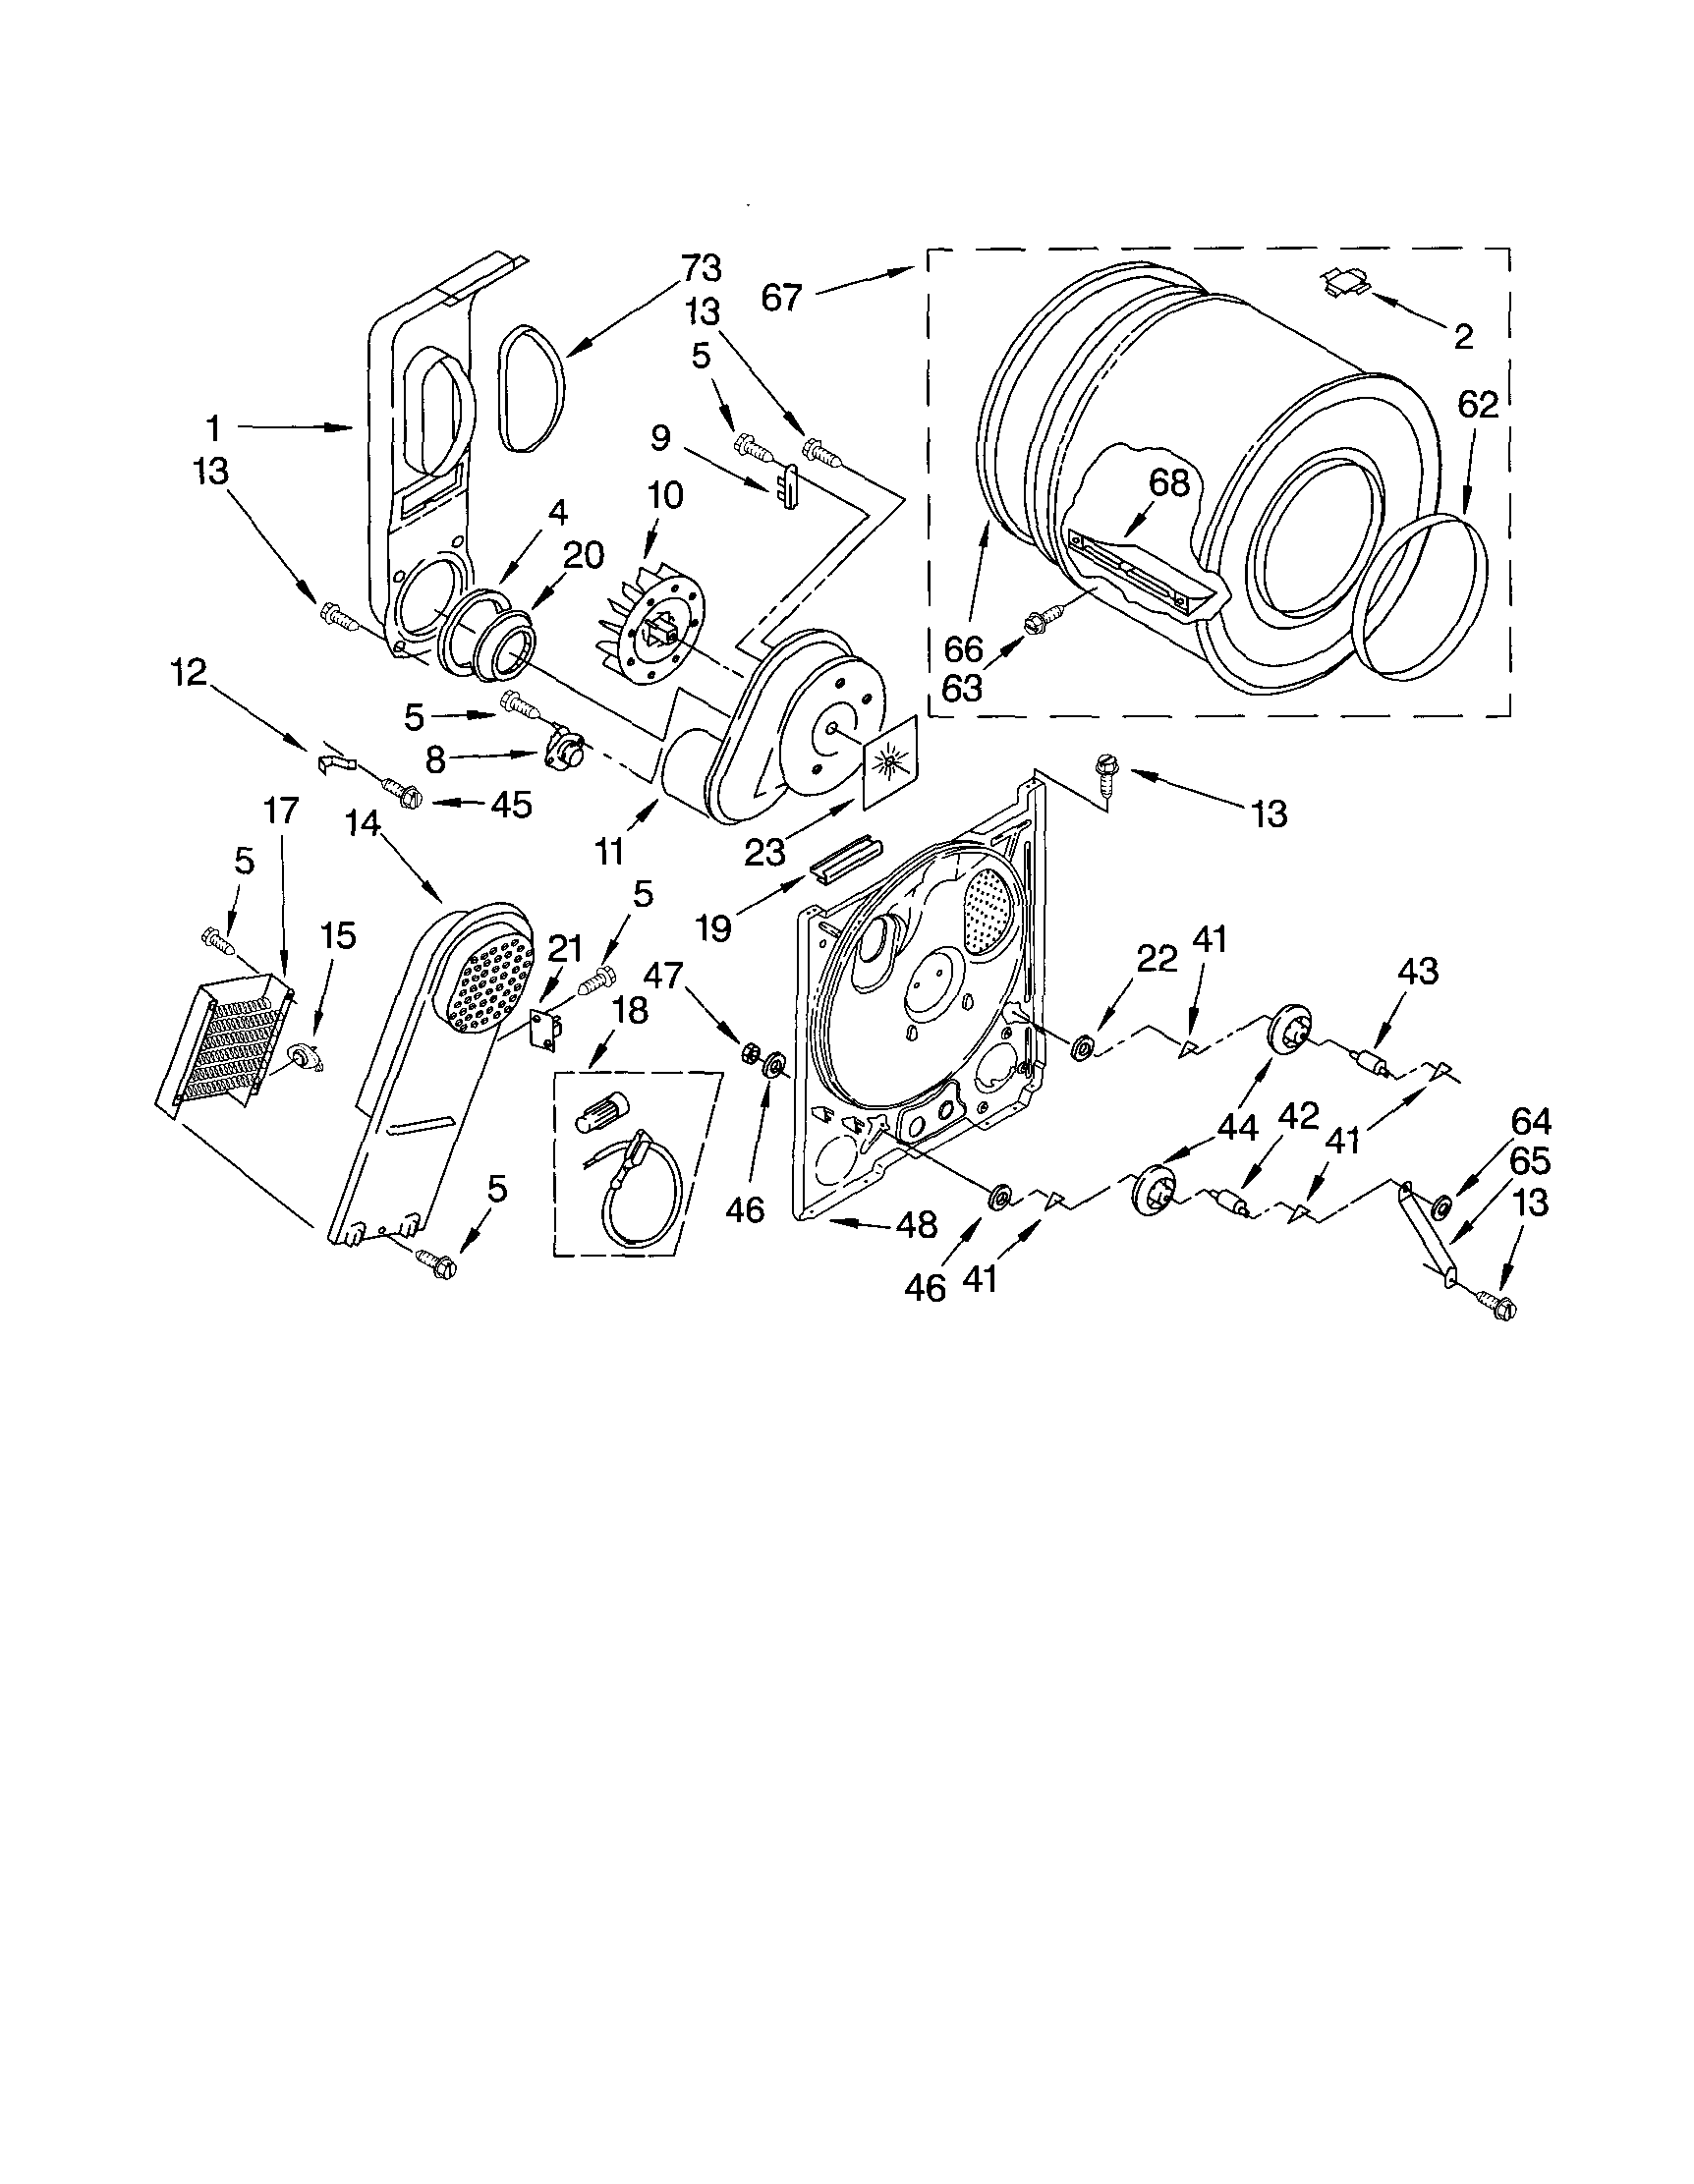 kenmore dryer operating thermostat start stop inch wiring diagram bulkhead and parts list for model 11062202101